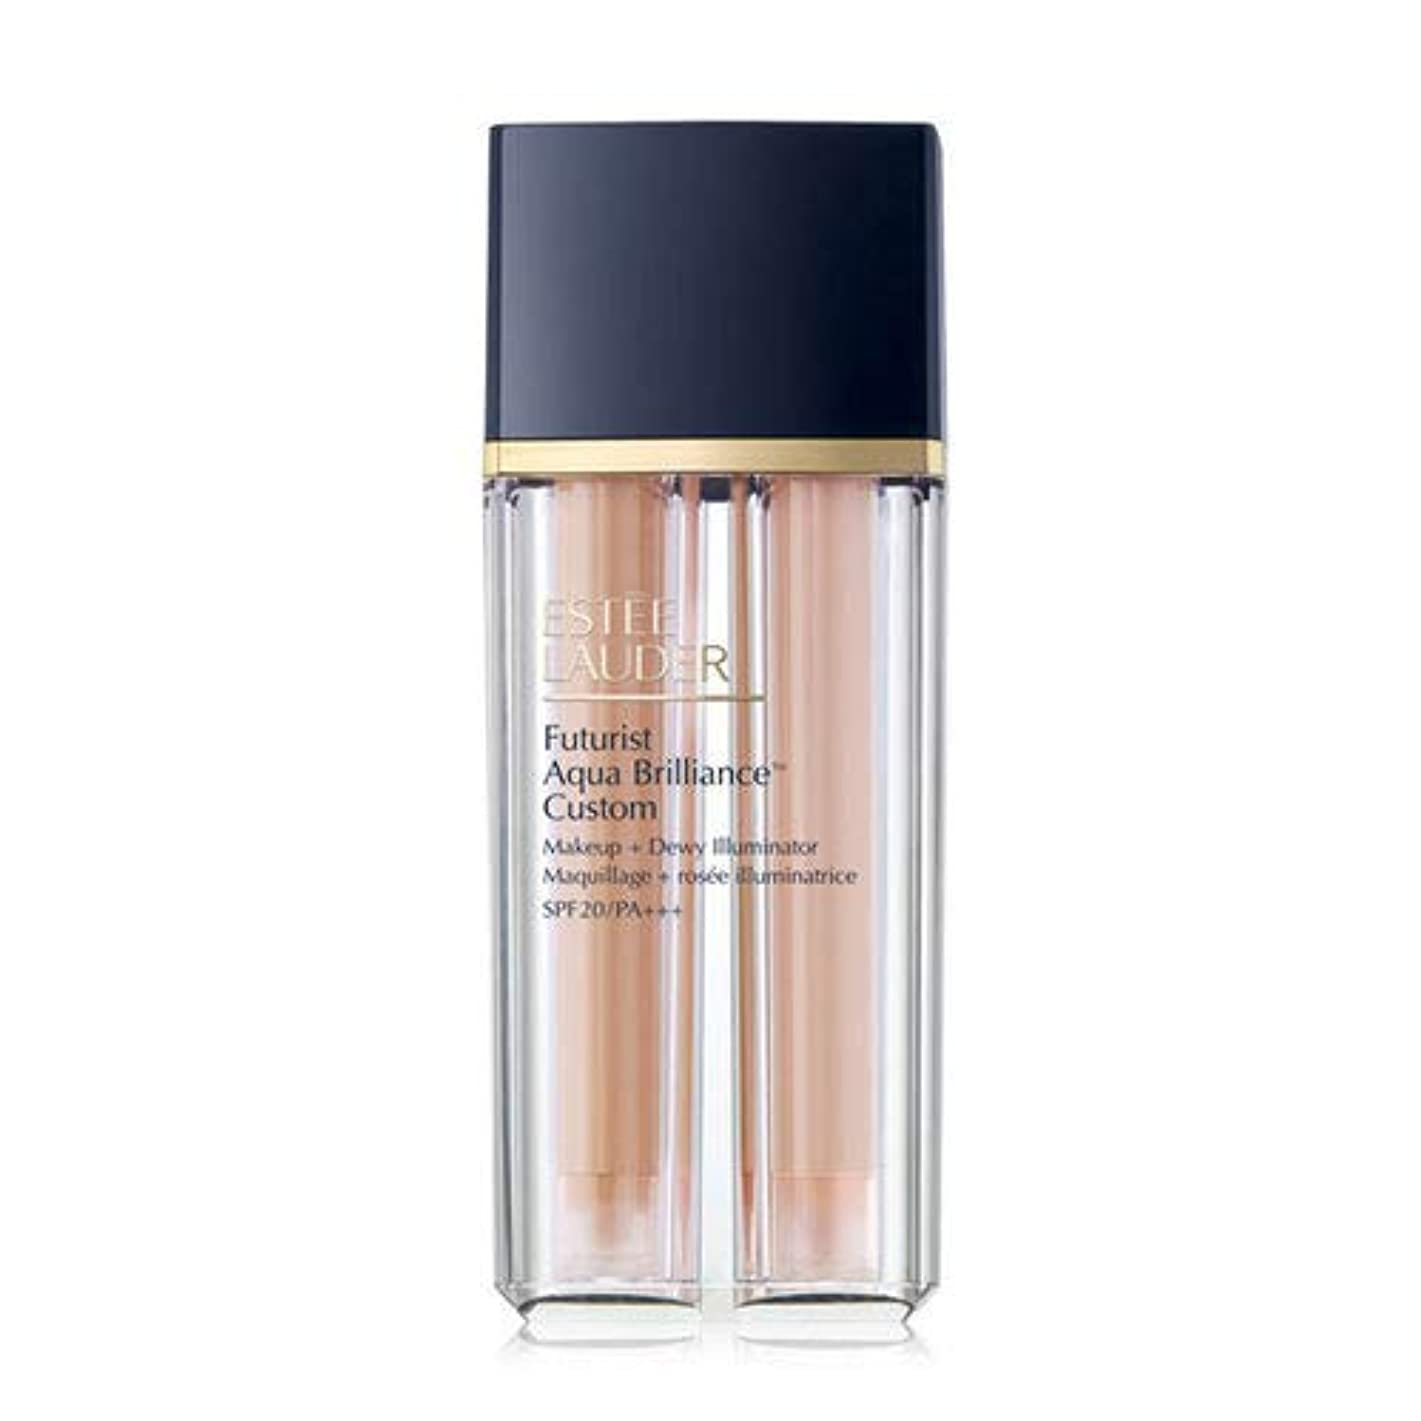 安らぎ衣類専門知識Estee Lauder(エスティローダー) Futurist Aqua Brilliance Custom Foundation & Illuminator Duo SPF20/PA+++ 15ml ×2EA #1C1 Cool Bone